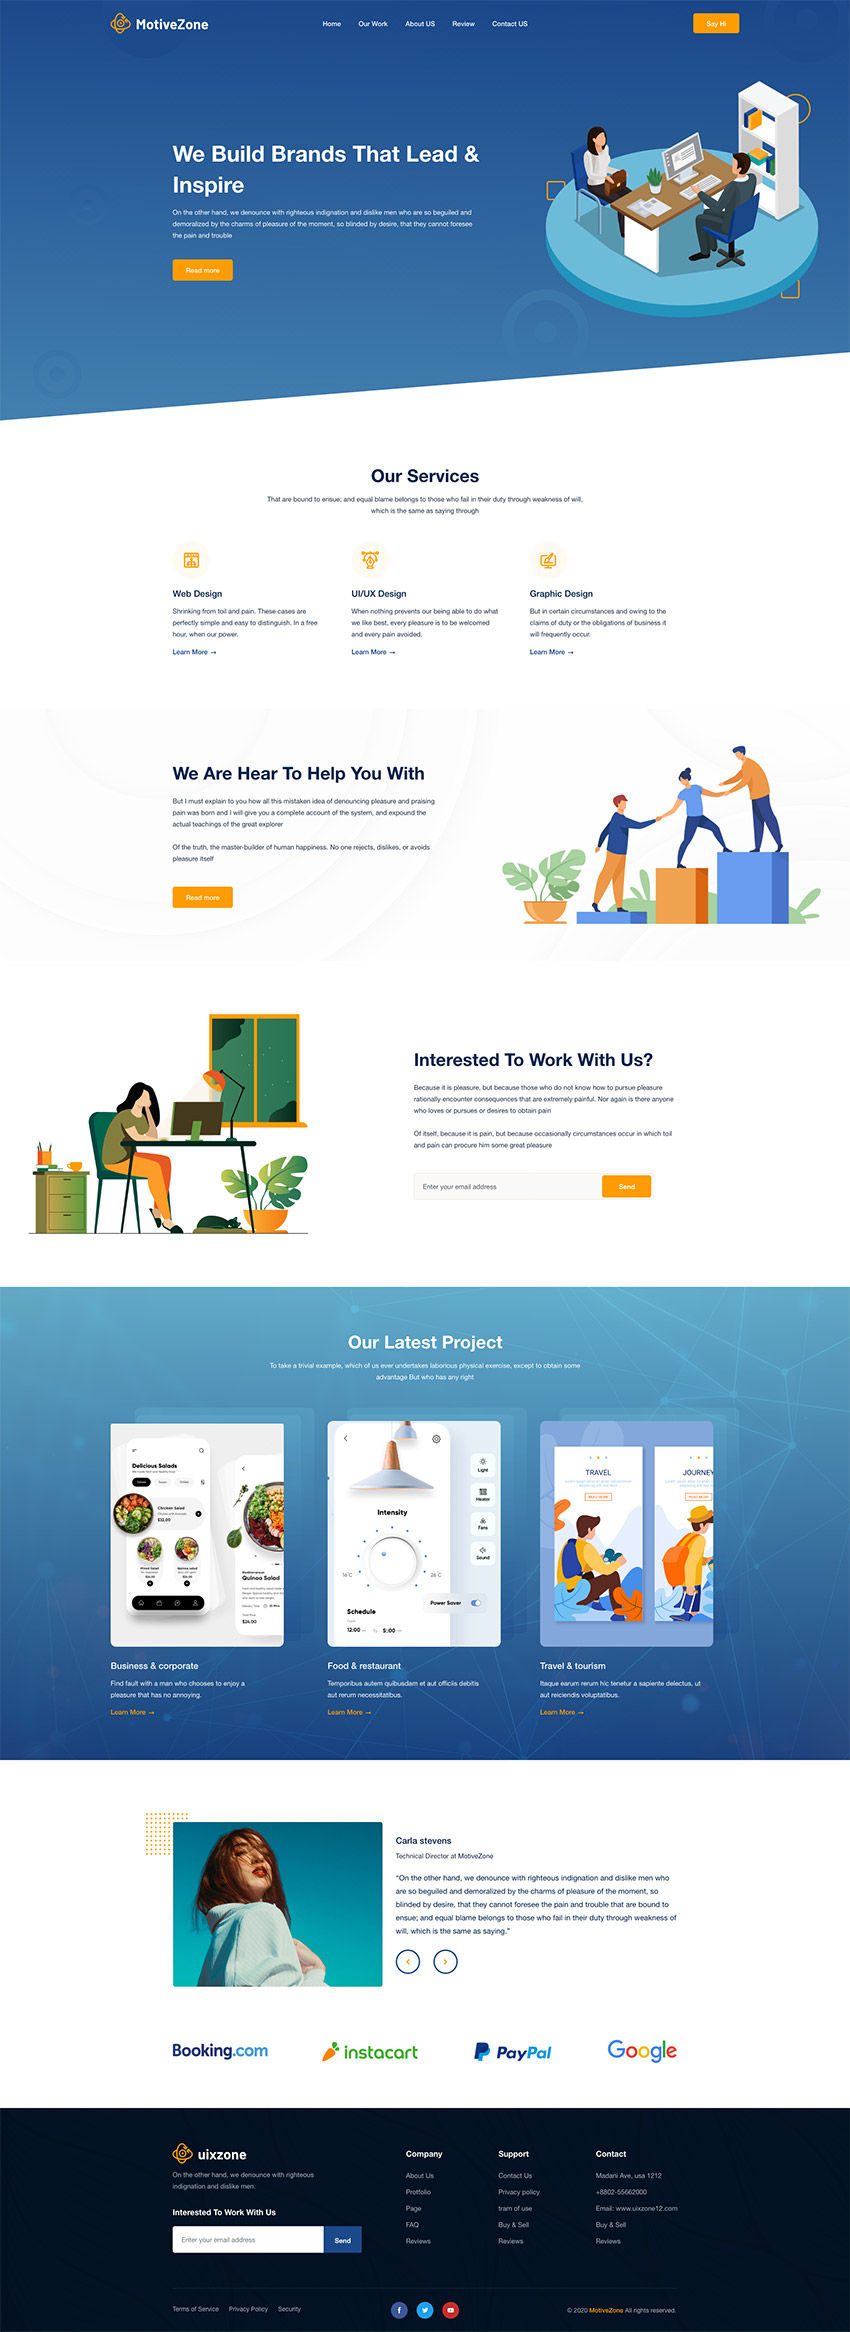 AgencyZone - Free Landing Page Design (Adobe XD) Preview